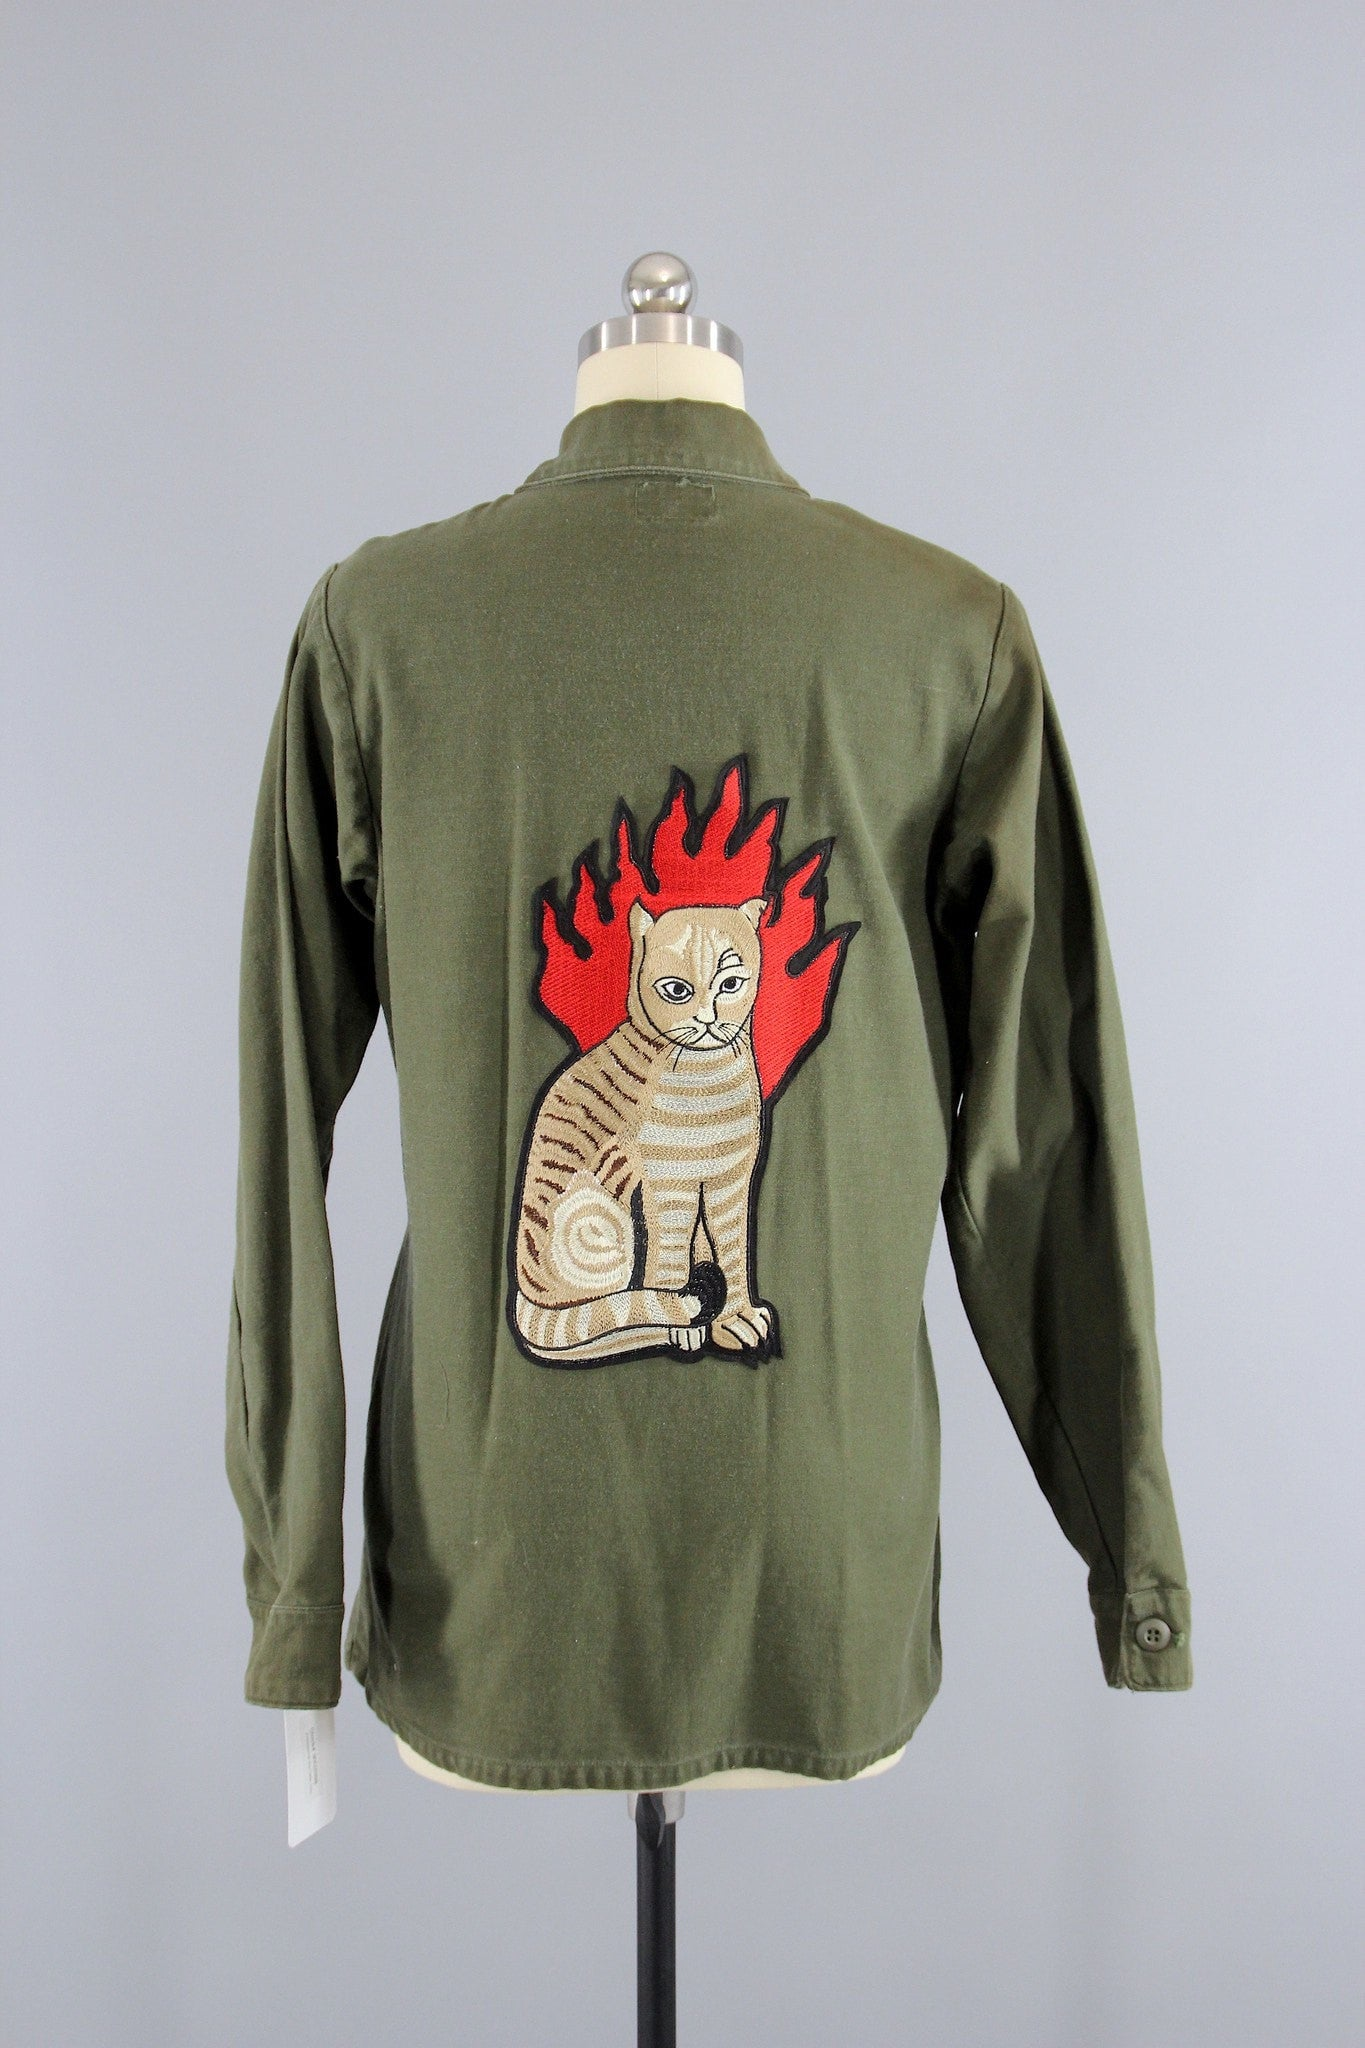 Vintage 1970s Embroidered US Army Shirt / Flaming Hell Cat Embroidery Patch Outerwear ThisBlueBird